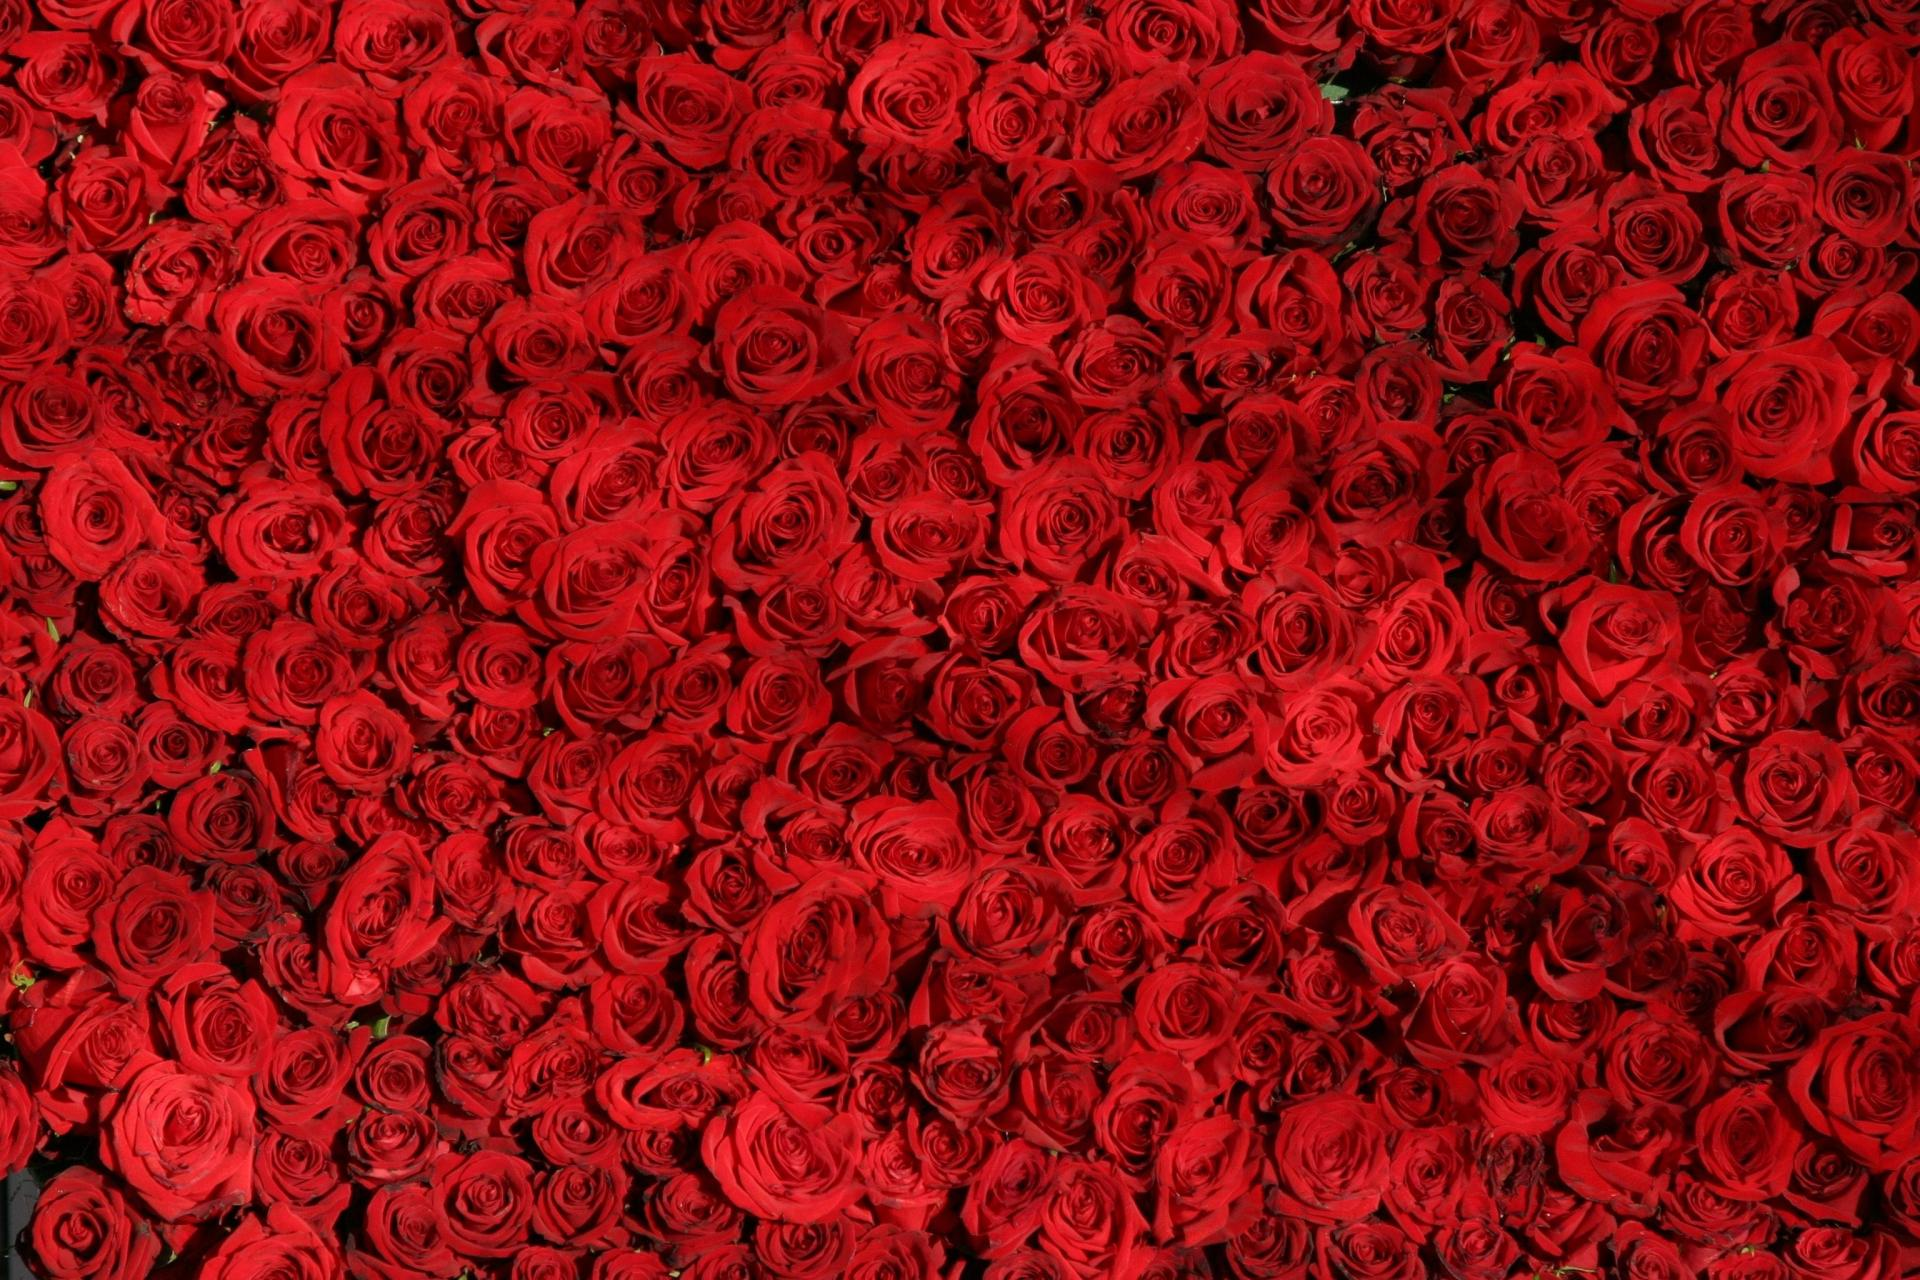 Red roses are love